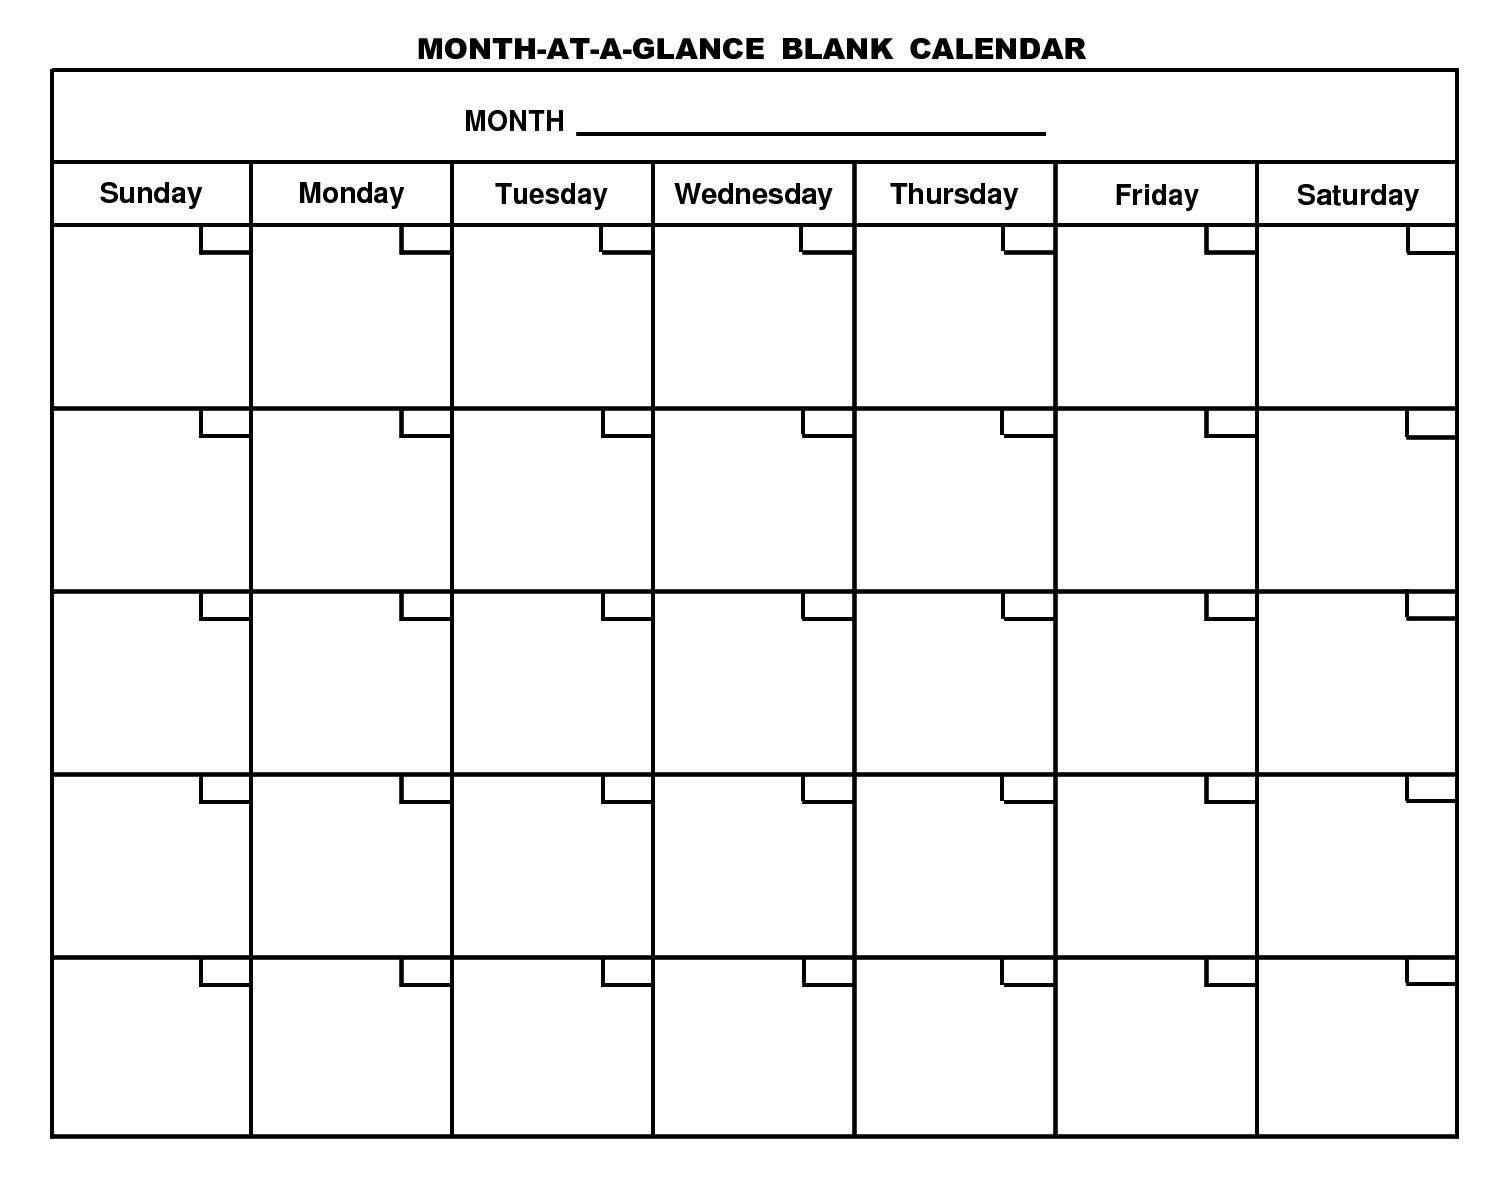 at a glance monthly calendars Kenicandlecomfortzonecom